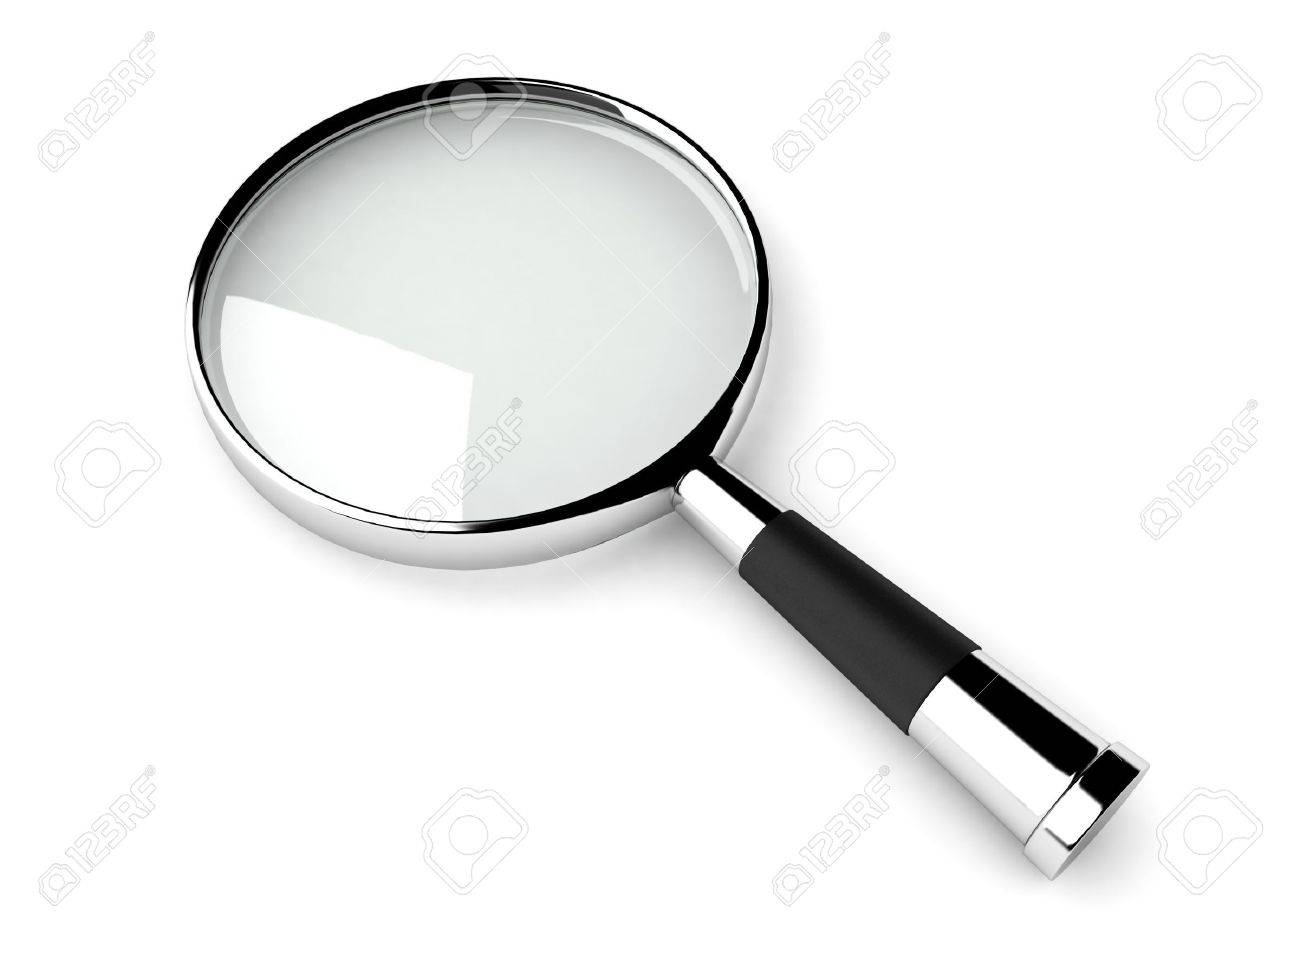 three dimensional magnifiying glass against white background Stock Photo - 3924271